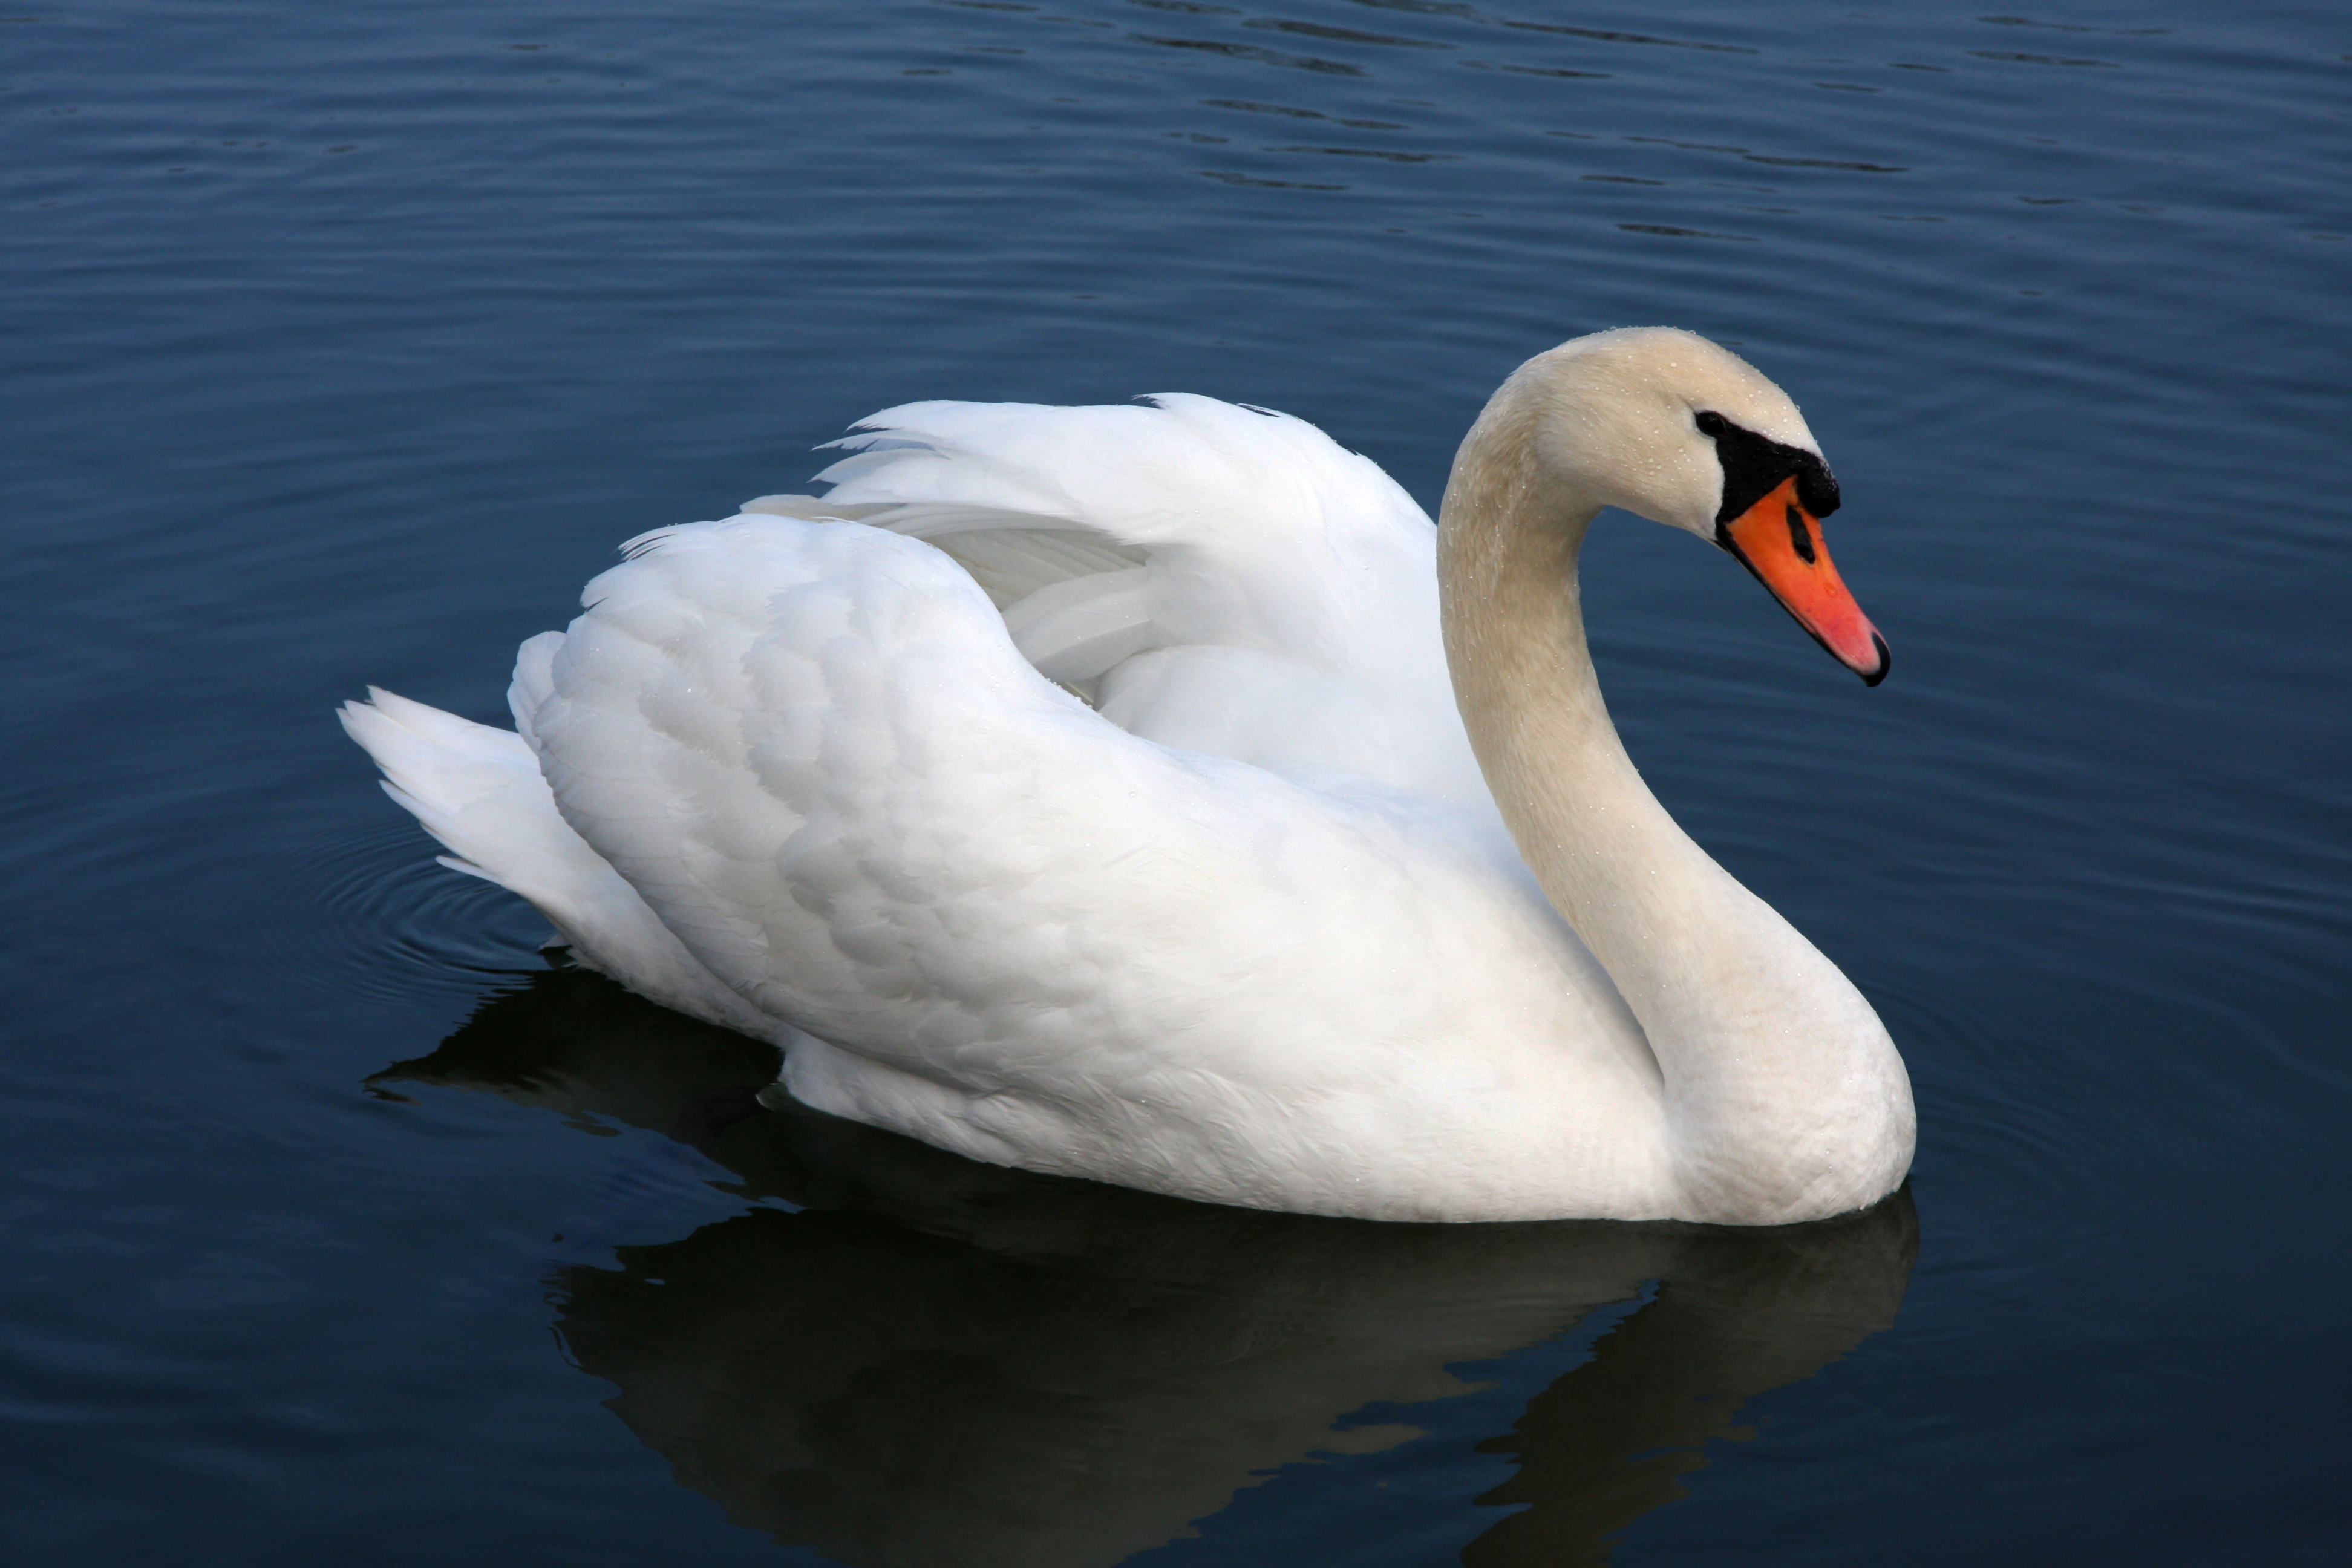 Imposter Syndrome and Graceful Swans